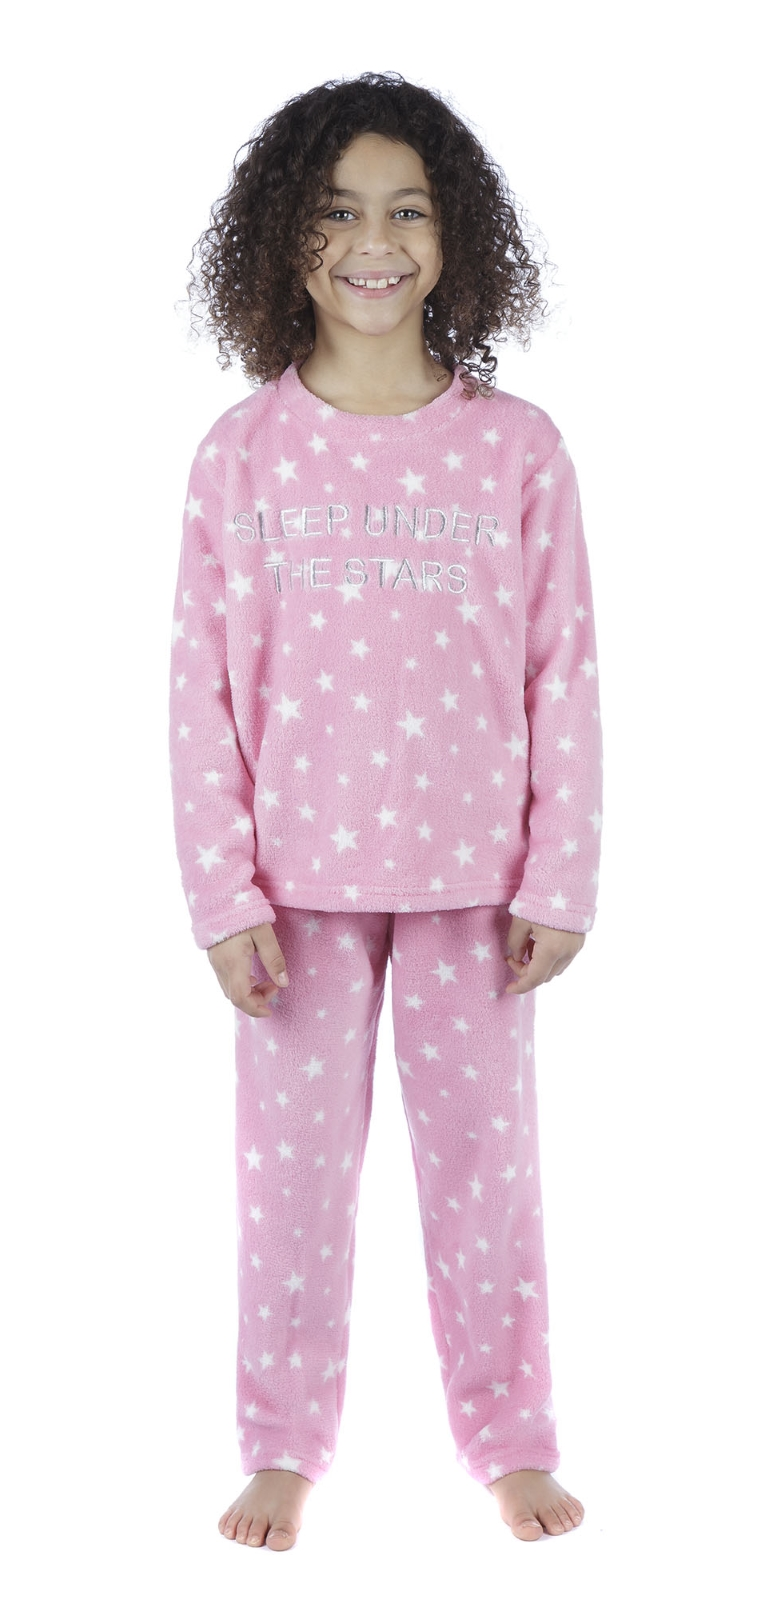 Girls Fleece Pyjamas Slogan Twosie Kids Lounge Set Star Print Xmas Gift Set Size